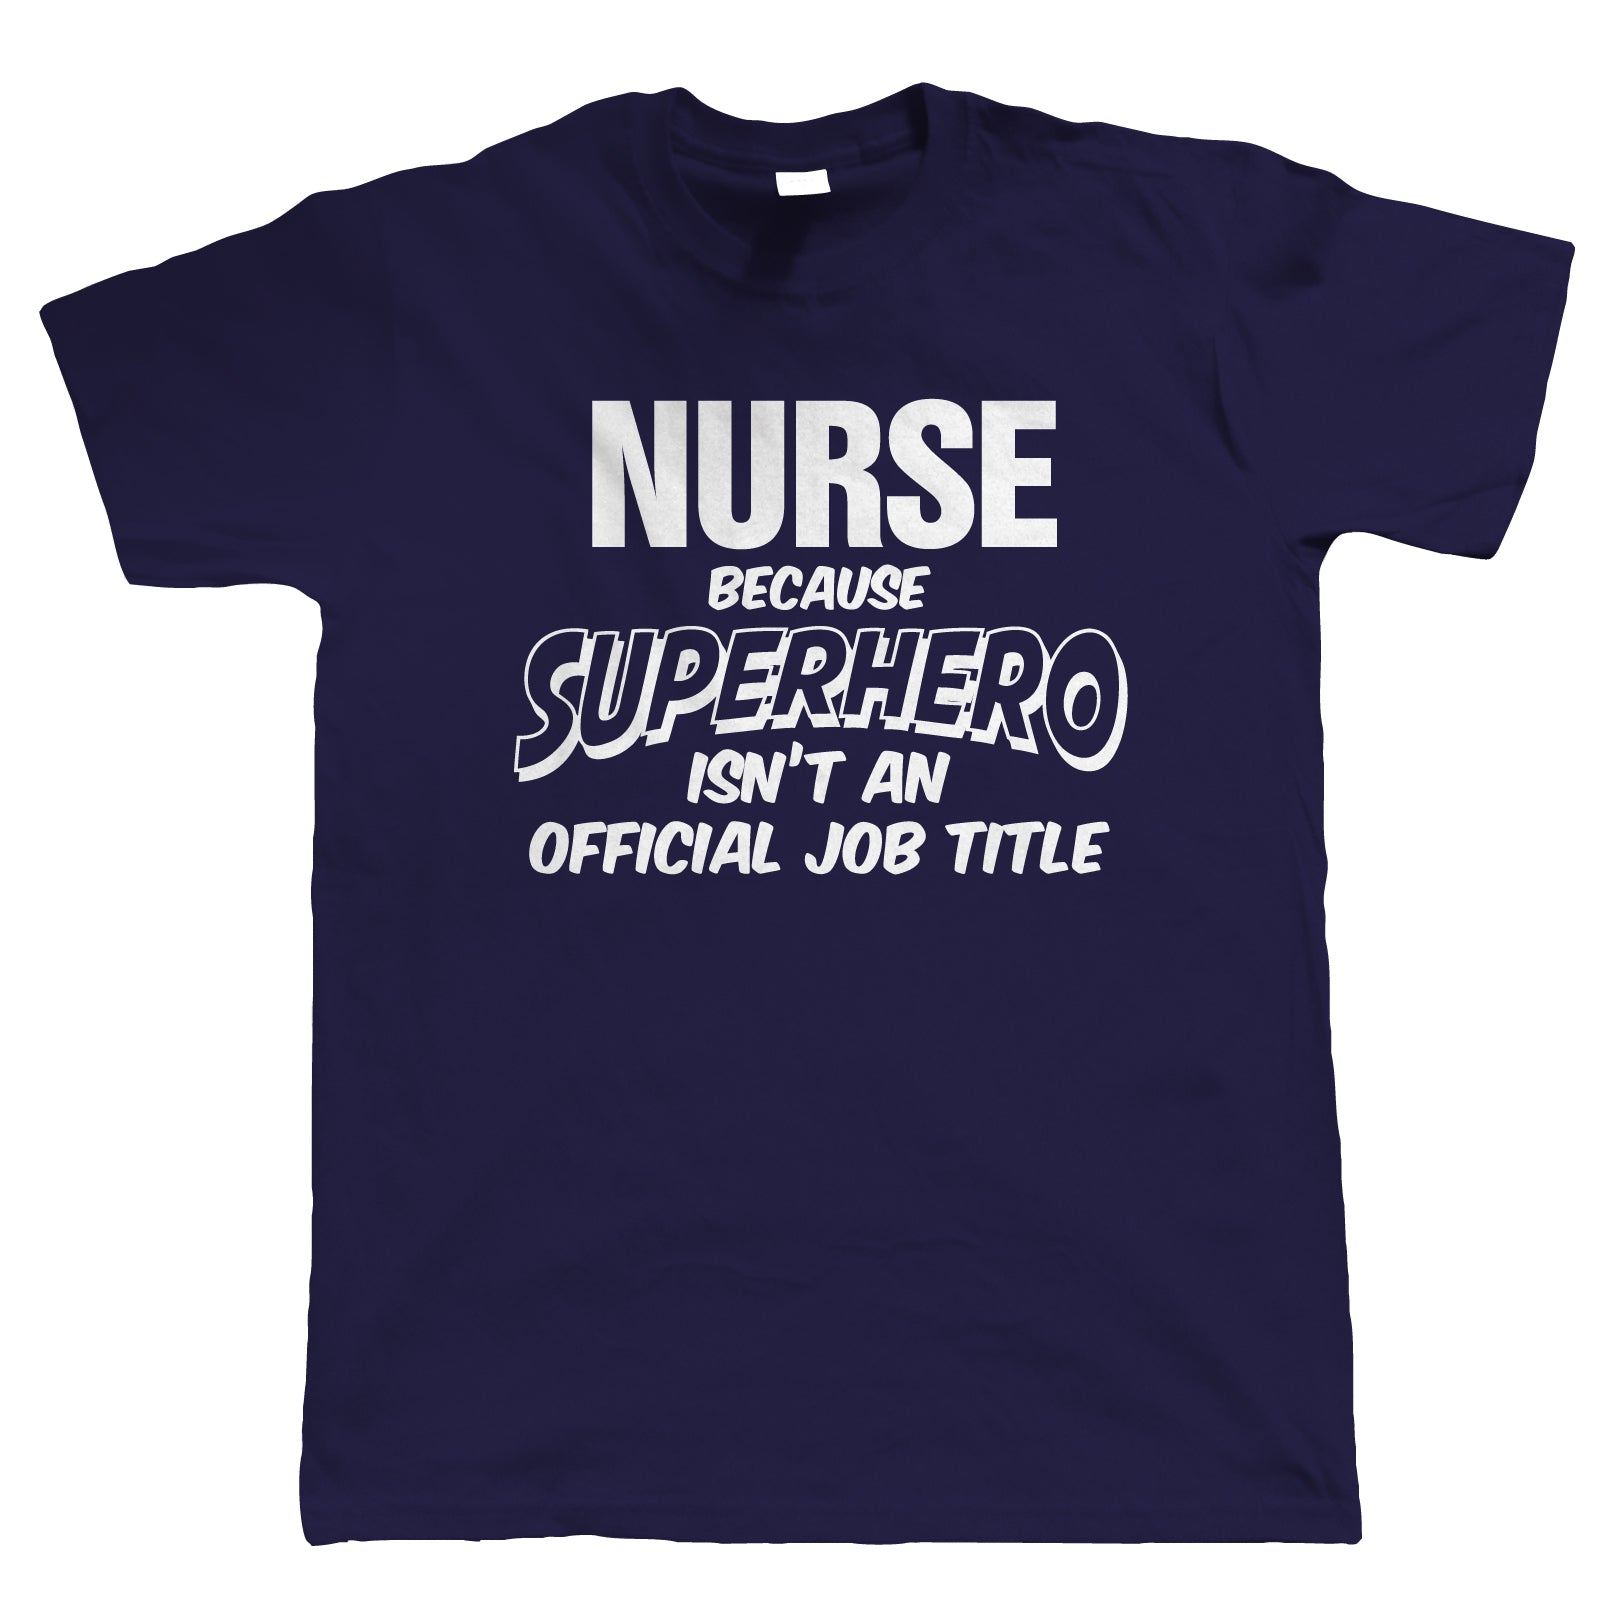 Nurse Superhero, Mens Funny T-Shirt